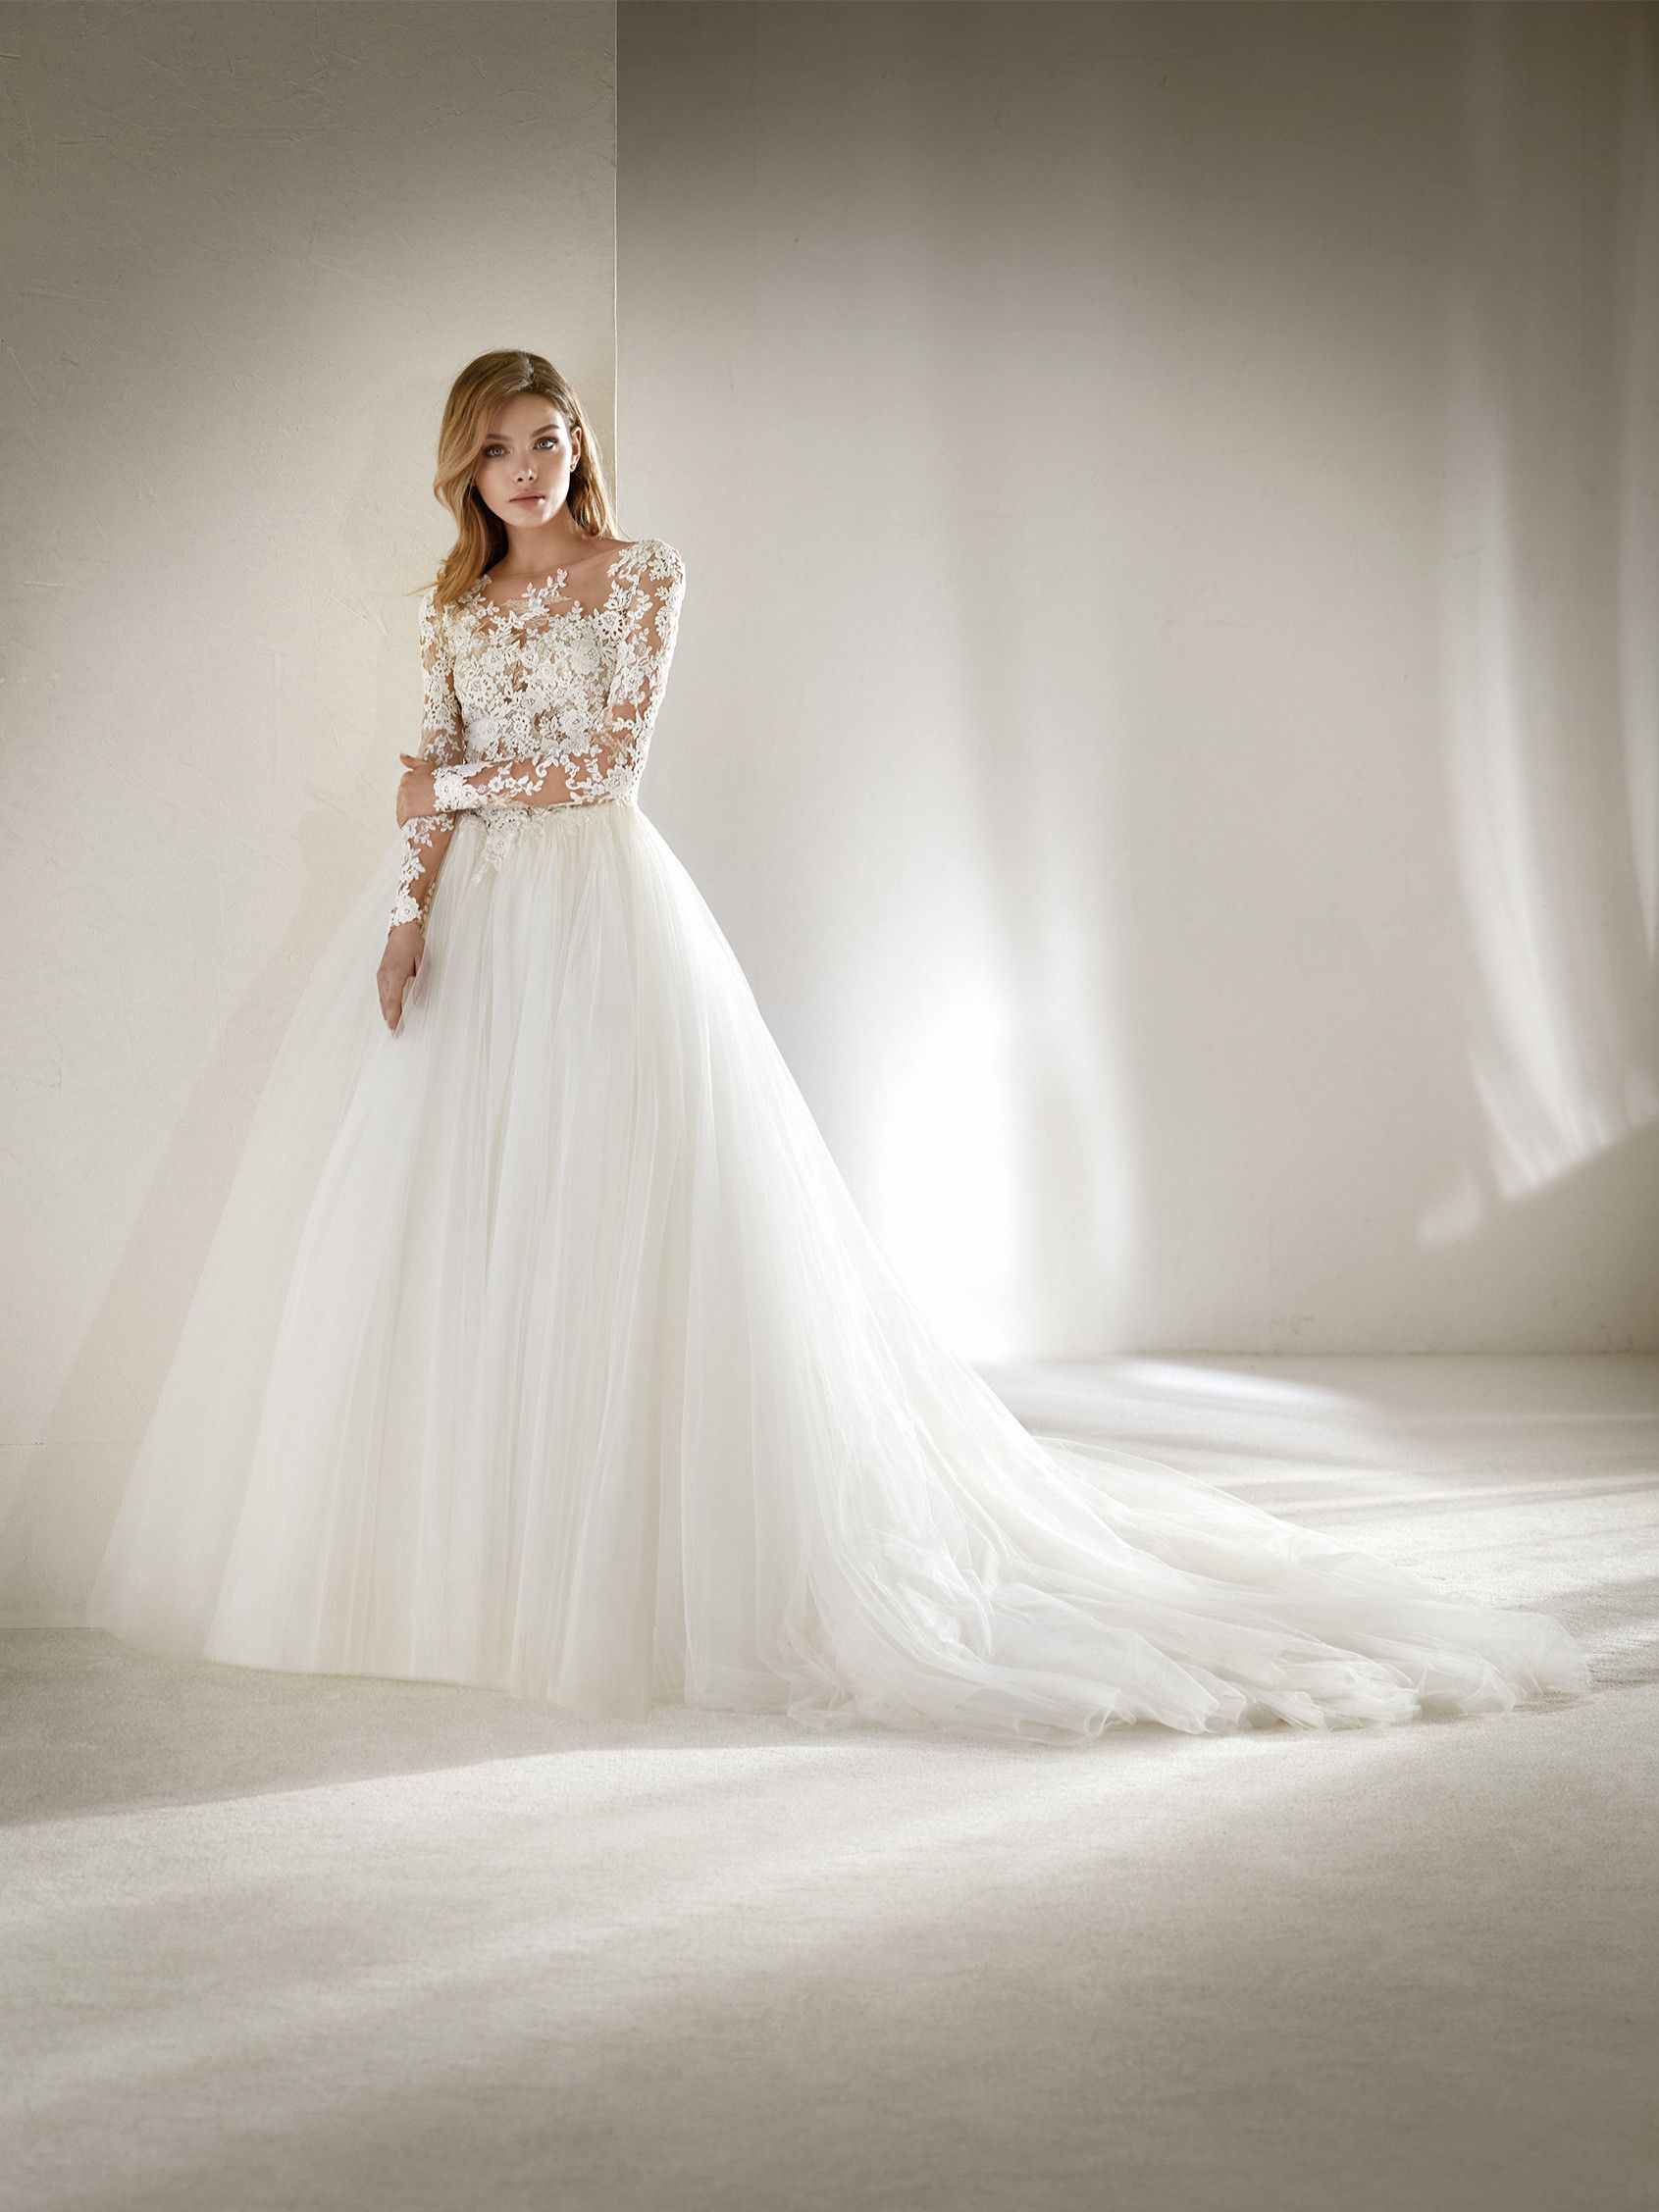 Spectacular ballgown wedding dress with a two-piece effect in